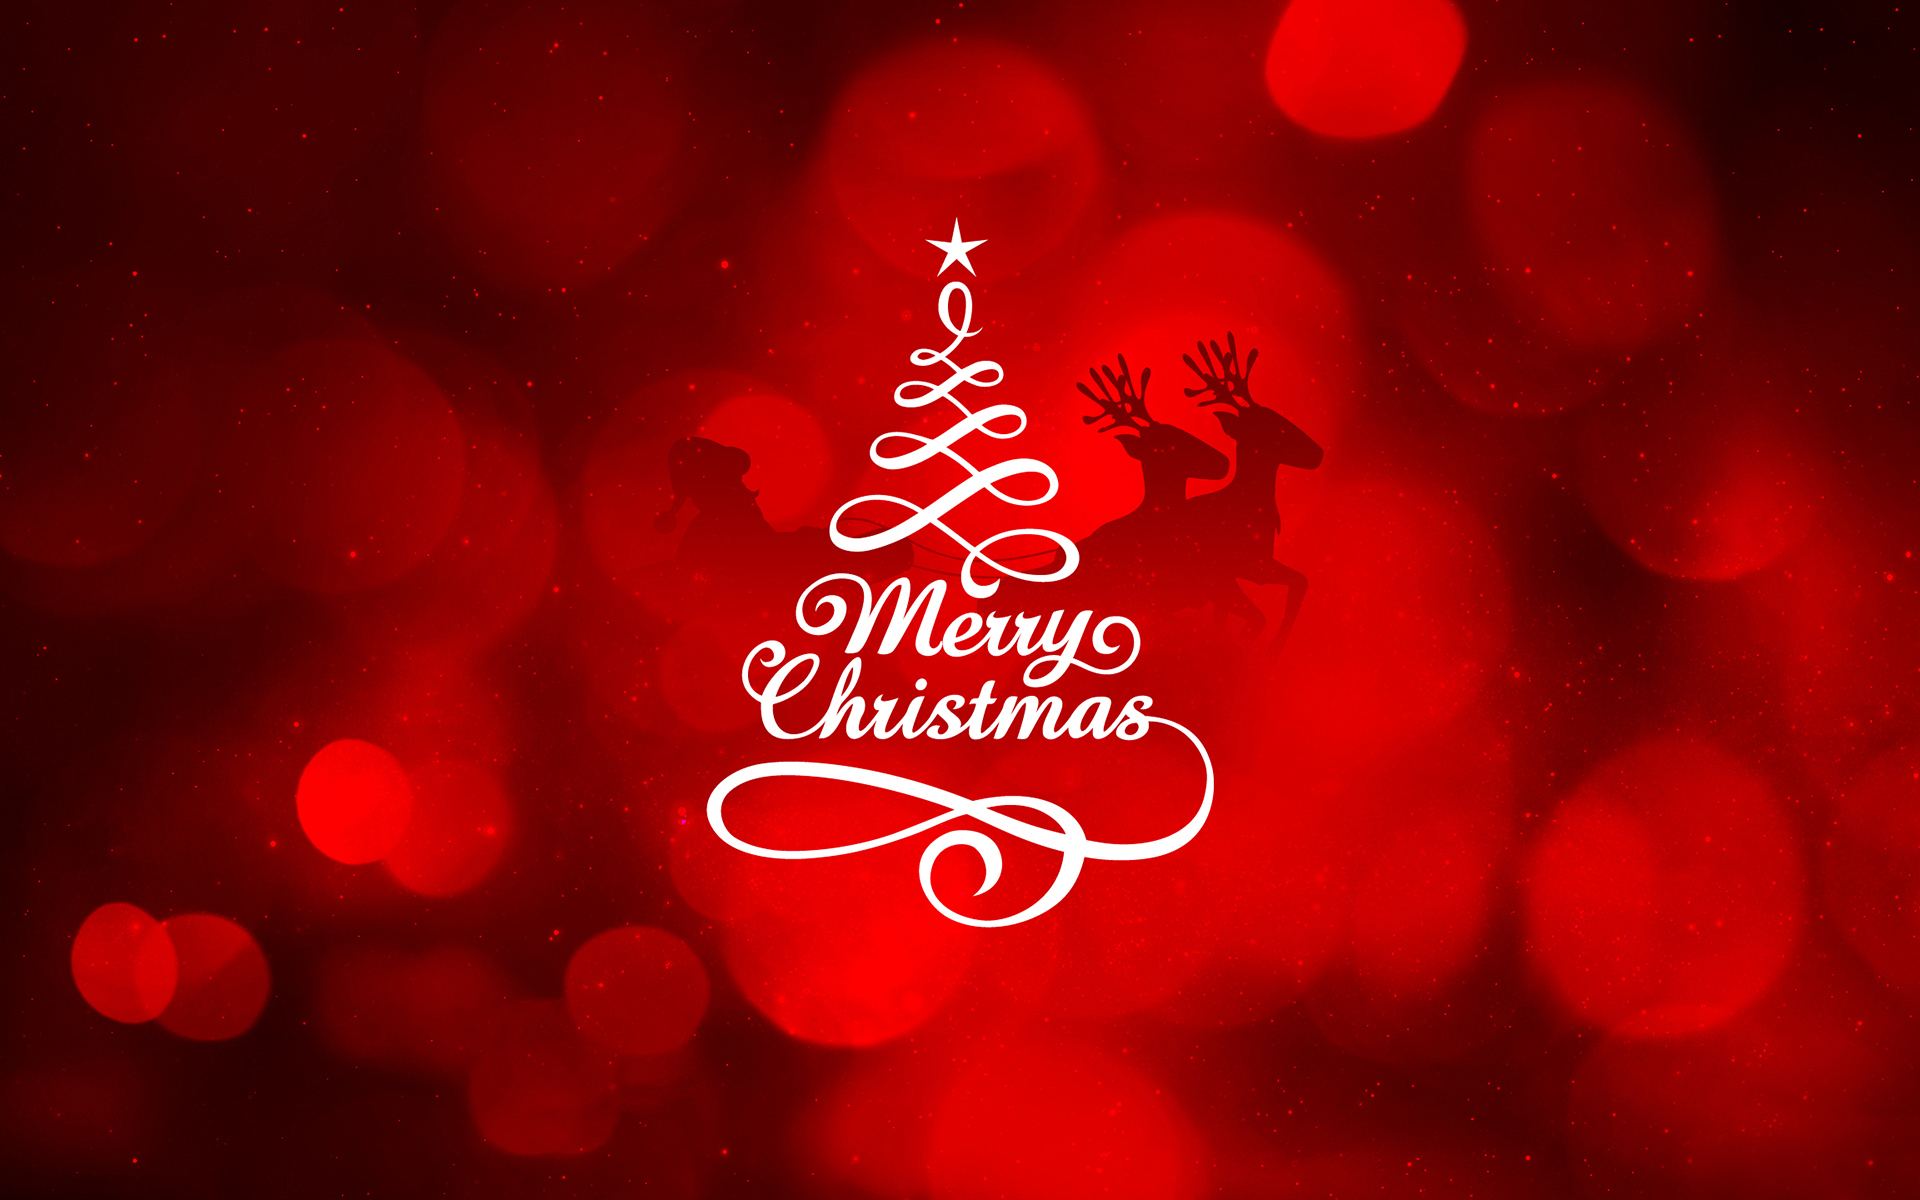 HD Wallpapers Merry Christmas New